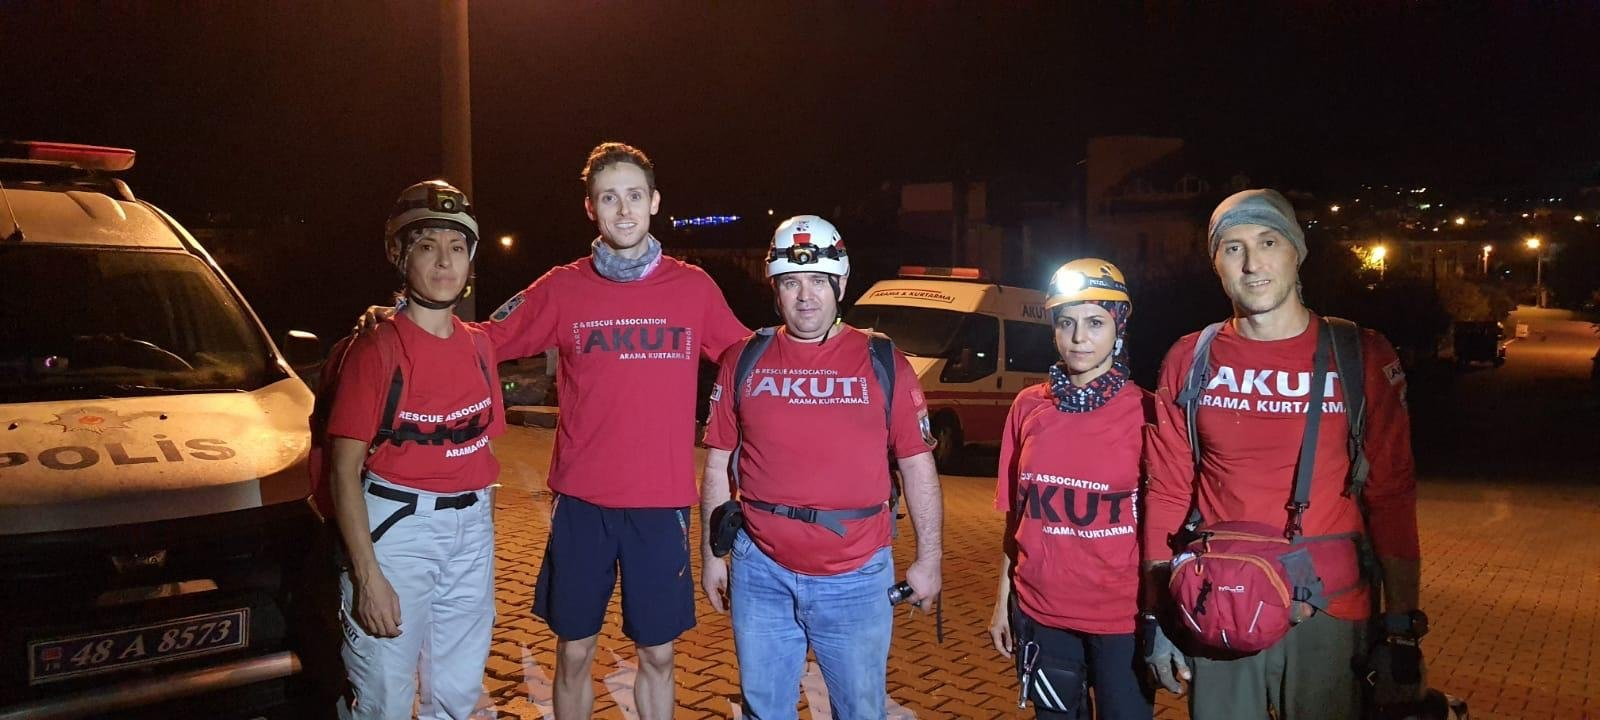 Turkish search team AKUT rescues American tourist stranded in wild